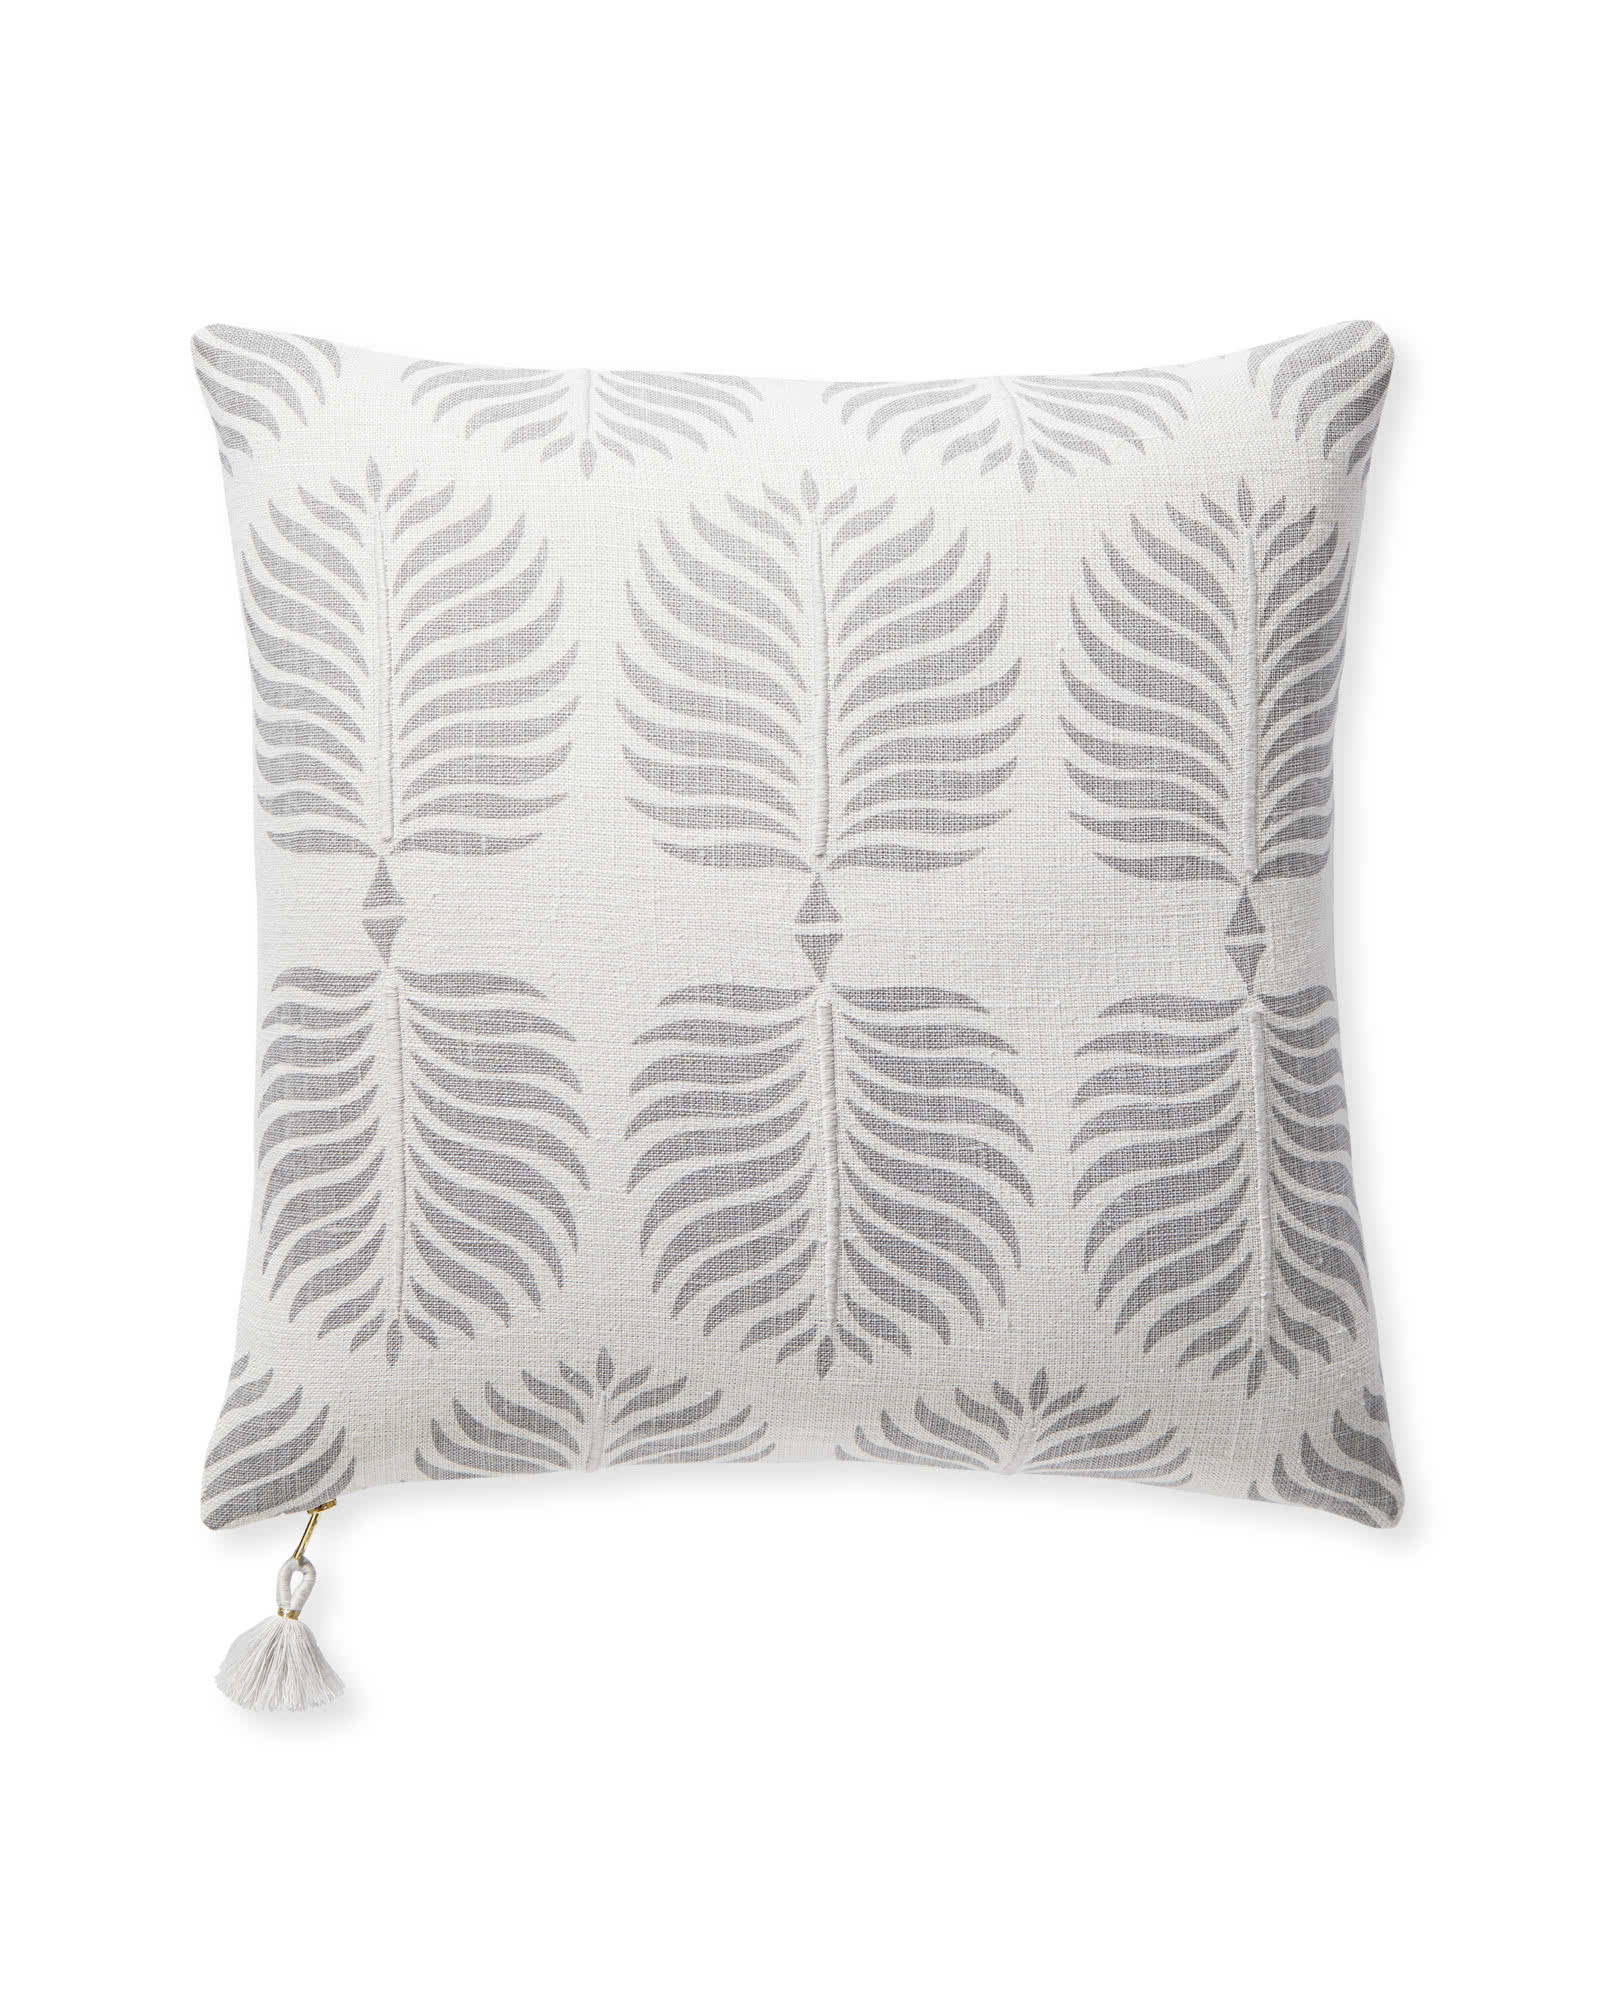 Granada Pillow Cover, Fog